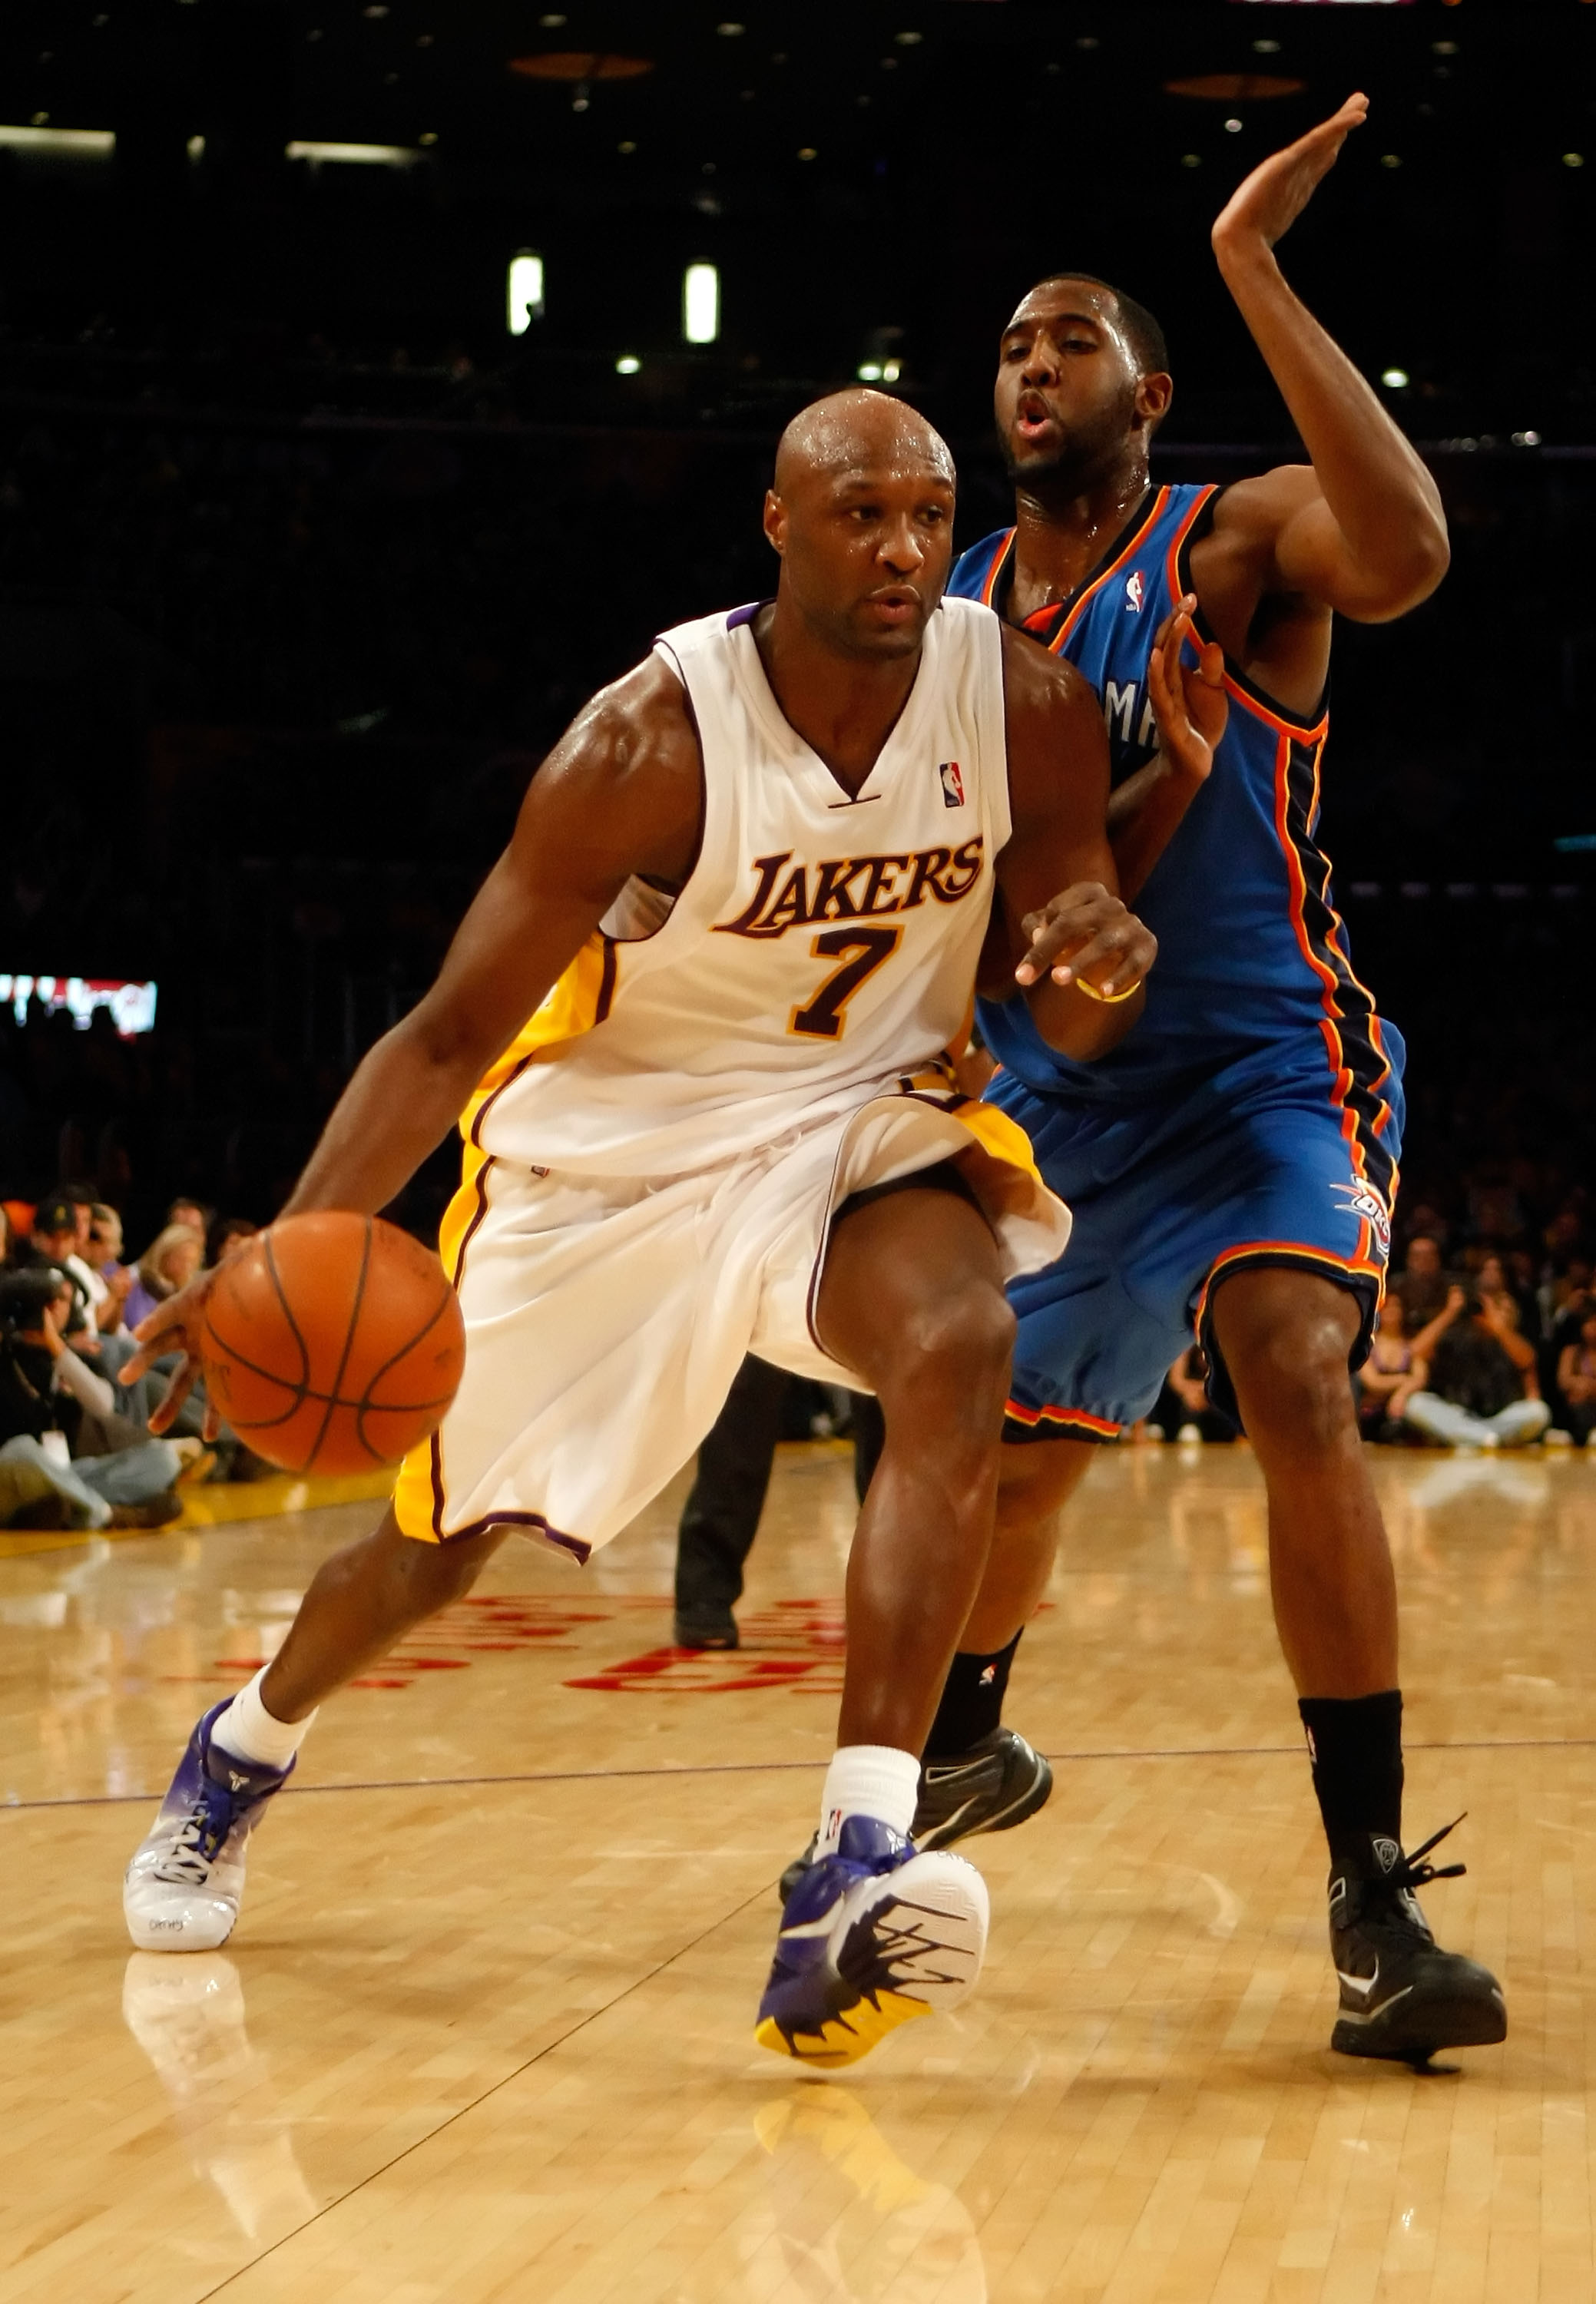 LOS ANGELES, CA - NOVEMBER 22:  Lamar Odom #7 of the Los Angeles Lakers drives to the basket past D.J. White #3 of the Oklahoma City Thunder in the second half at Staples Center on November 22, 2009 in Los Angeles, California. The Lakers defeated the Thun